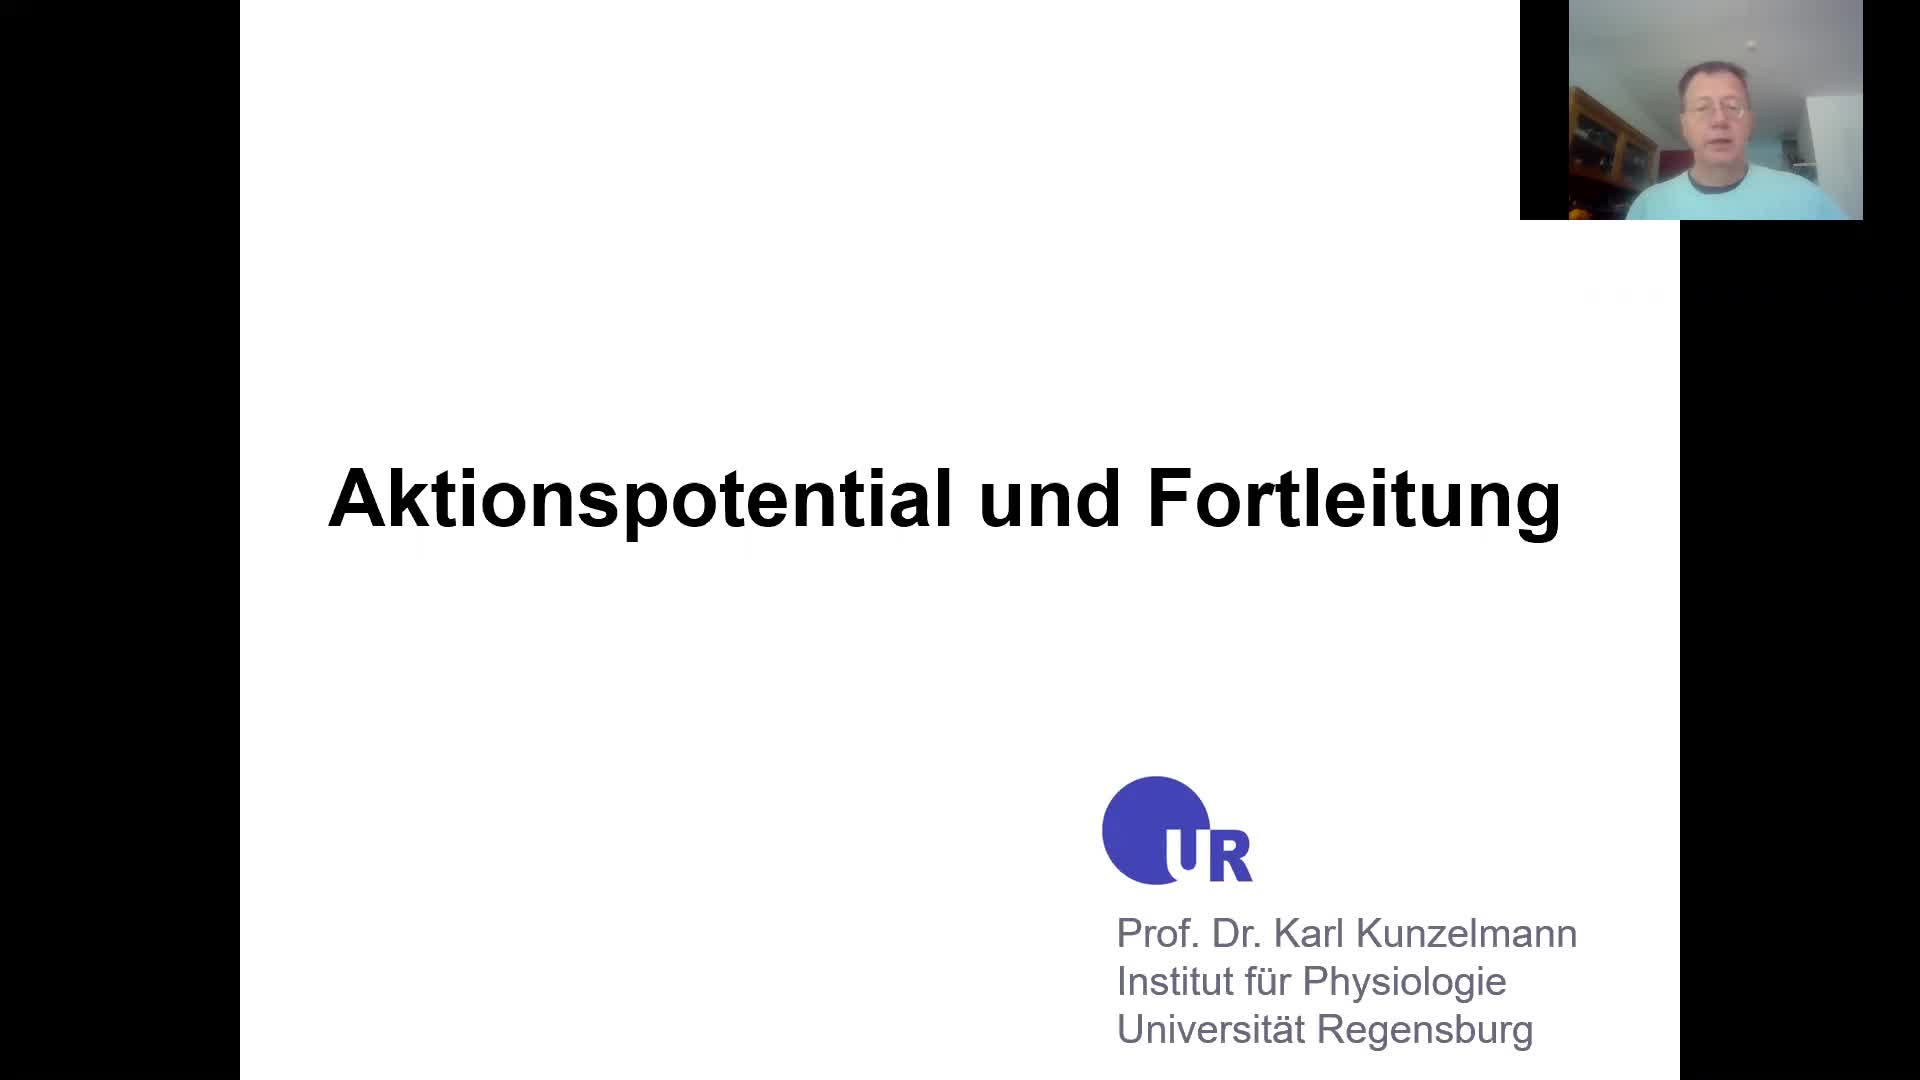 4. Aktionspotential und Fortleitung